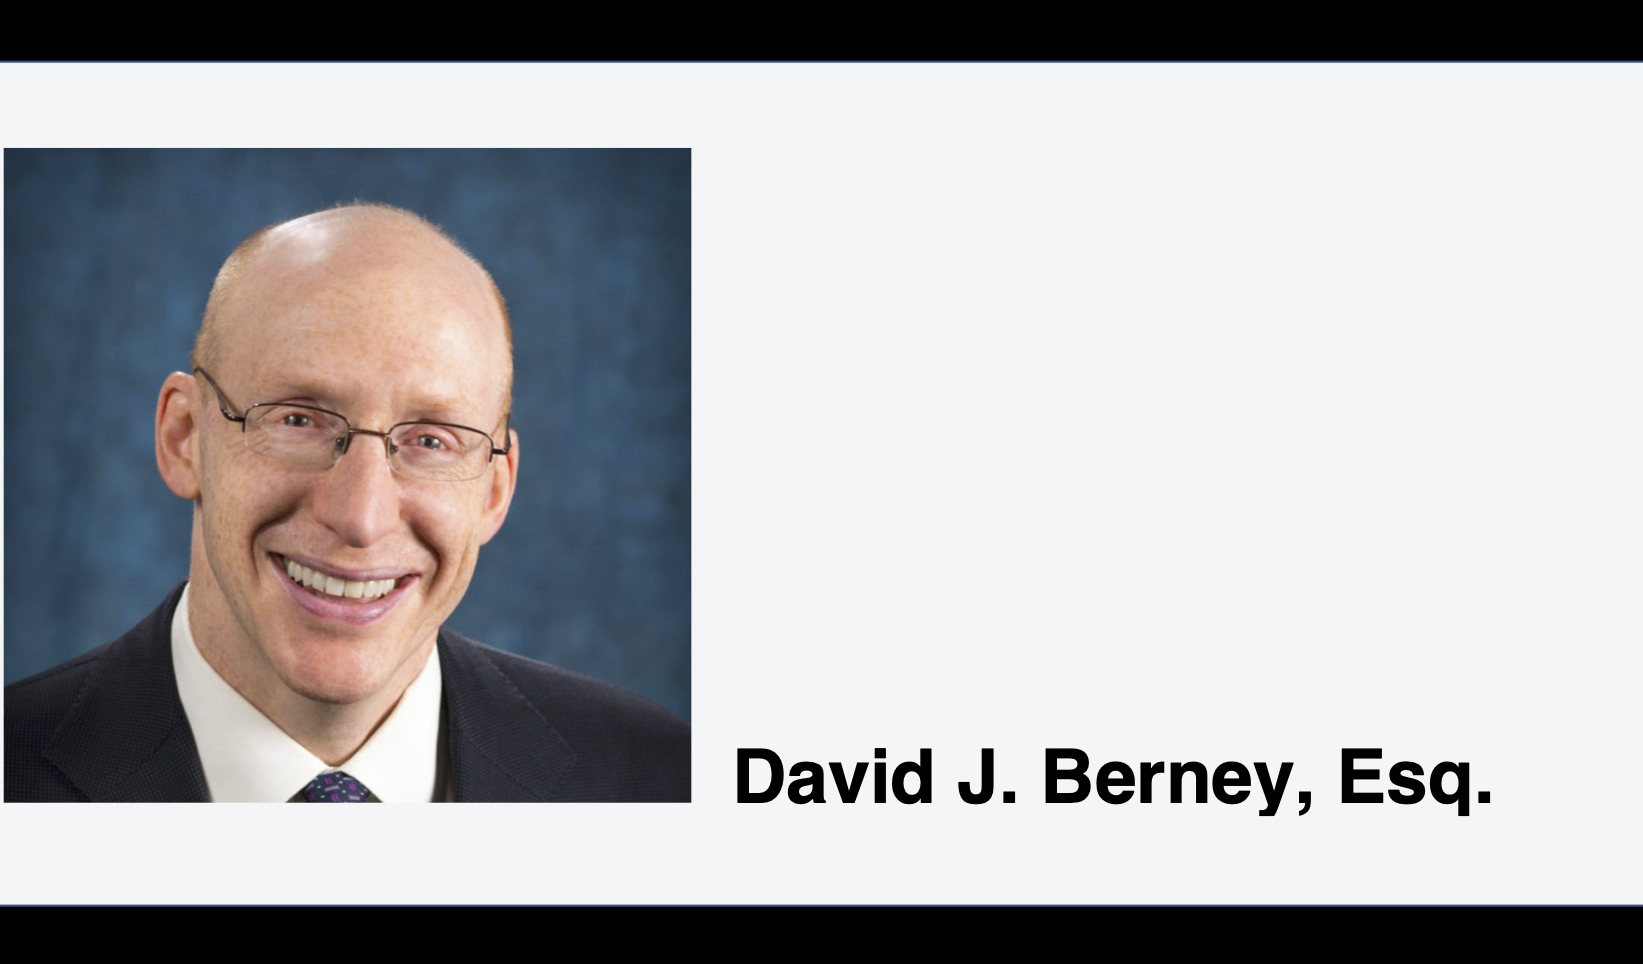 Headshot of Dave Berney, Esq.